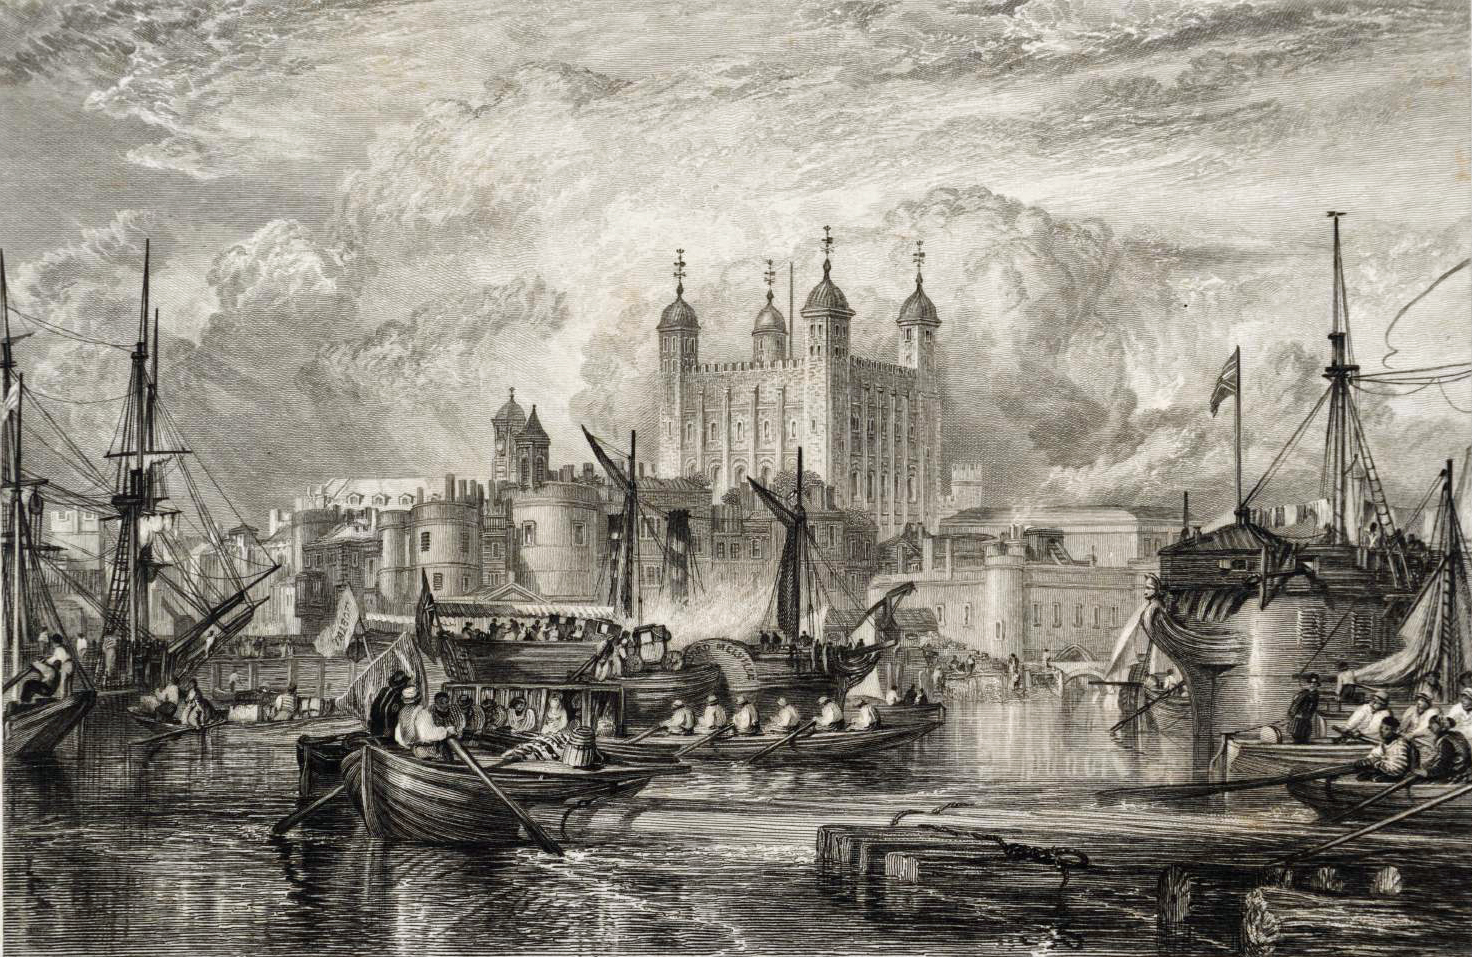 The Tower of London, engraved by W. Miller published 1831 Joseph Mallord William Turner 1775-1851 Transferred from the British Museum 1988